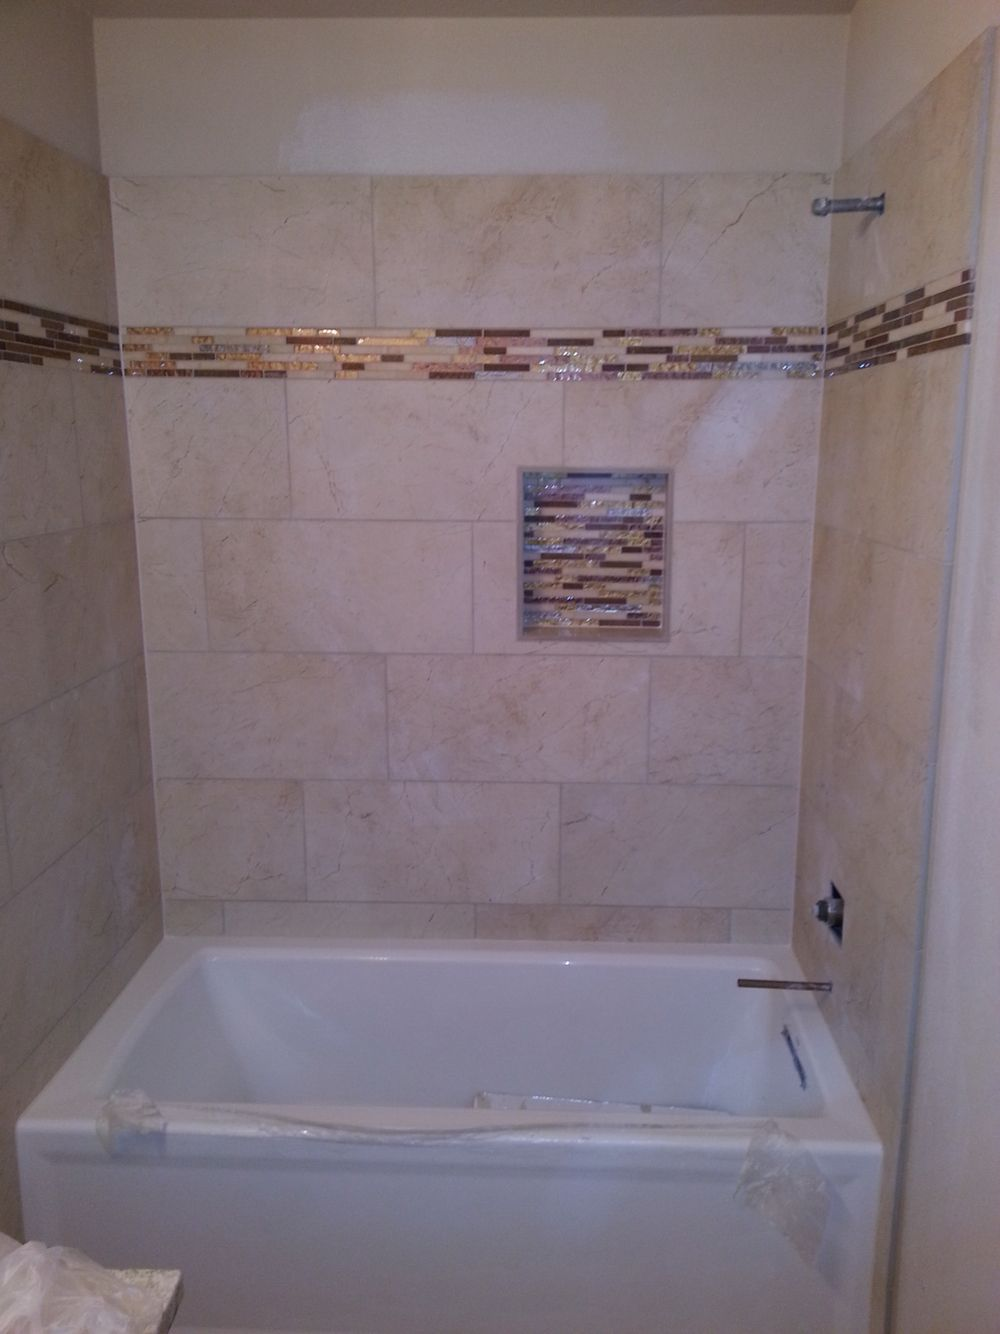 Atx Tile Built Tub Surround 12x24 Inch Tile Stacked On Thirds With Recessed Shampoo Shelf 2015 By Atxtile Com Bathroom Remodel Master Shower Tile